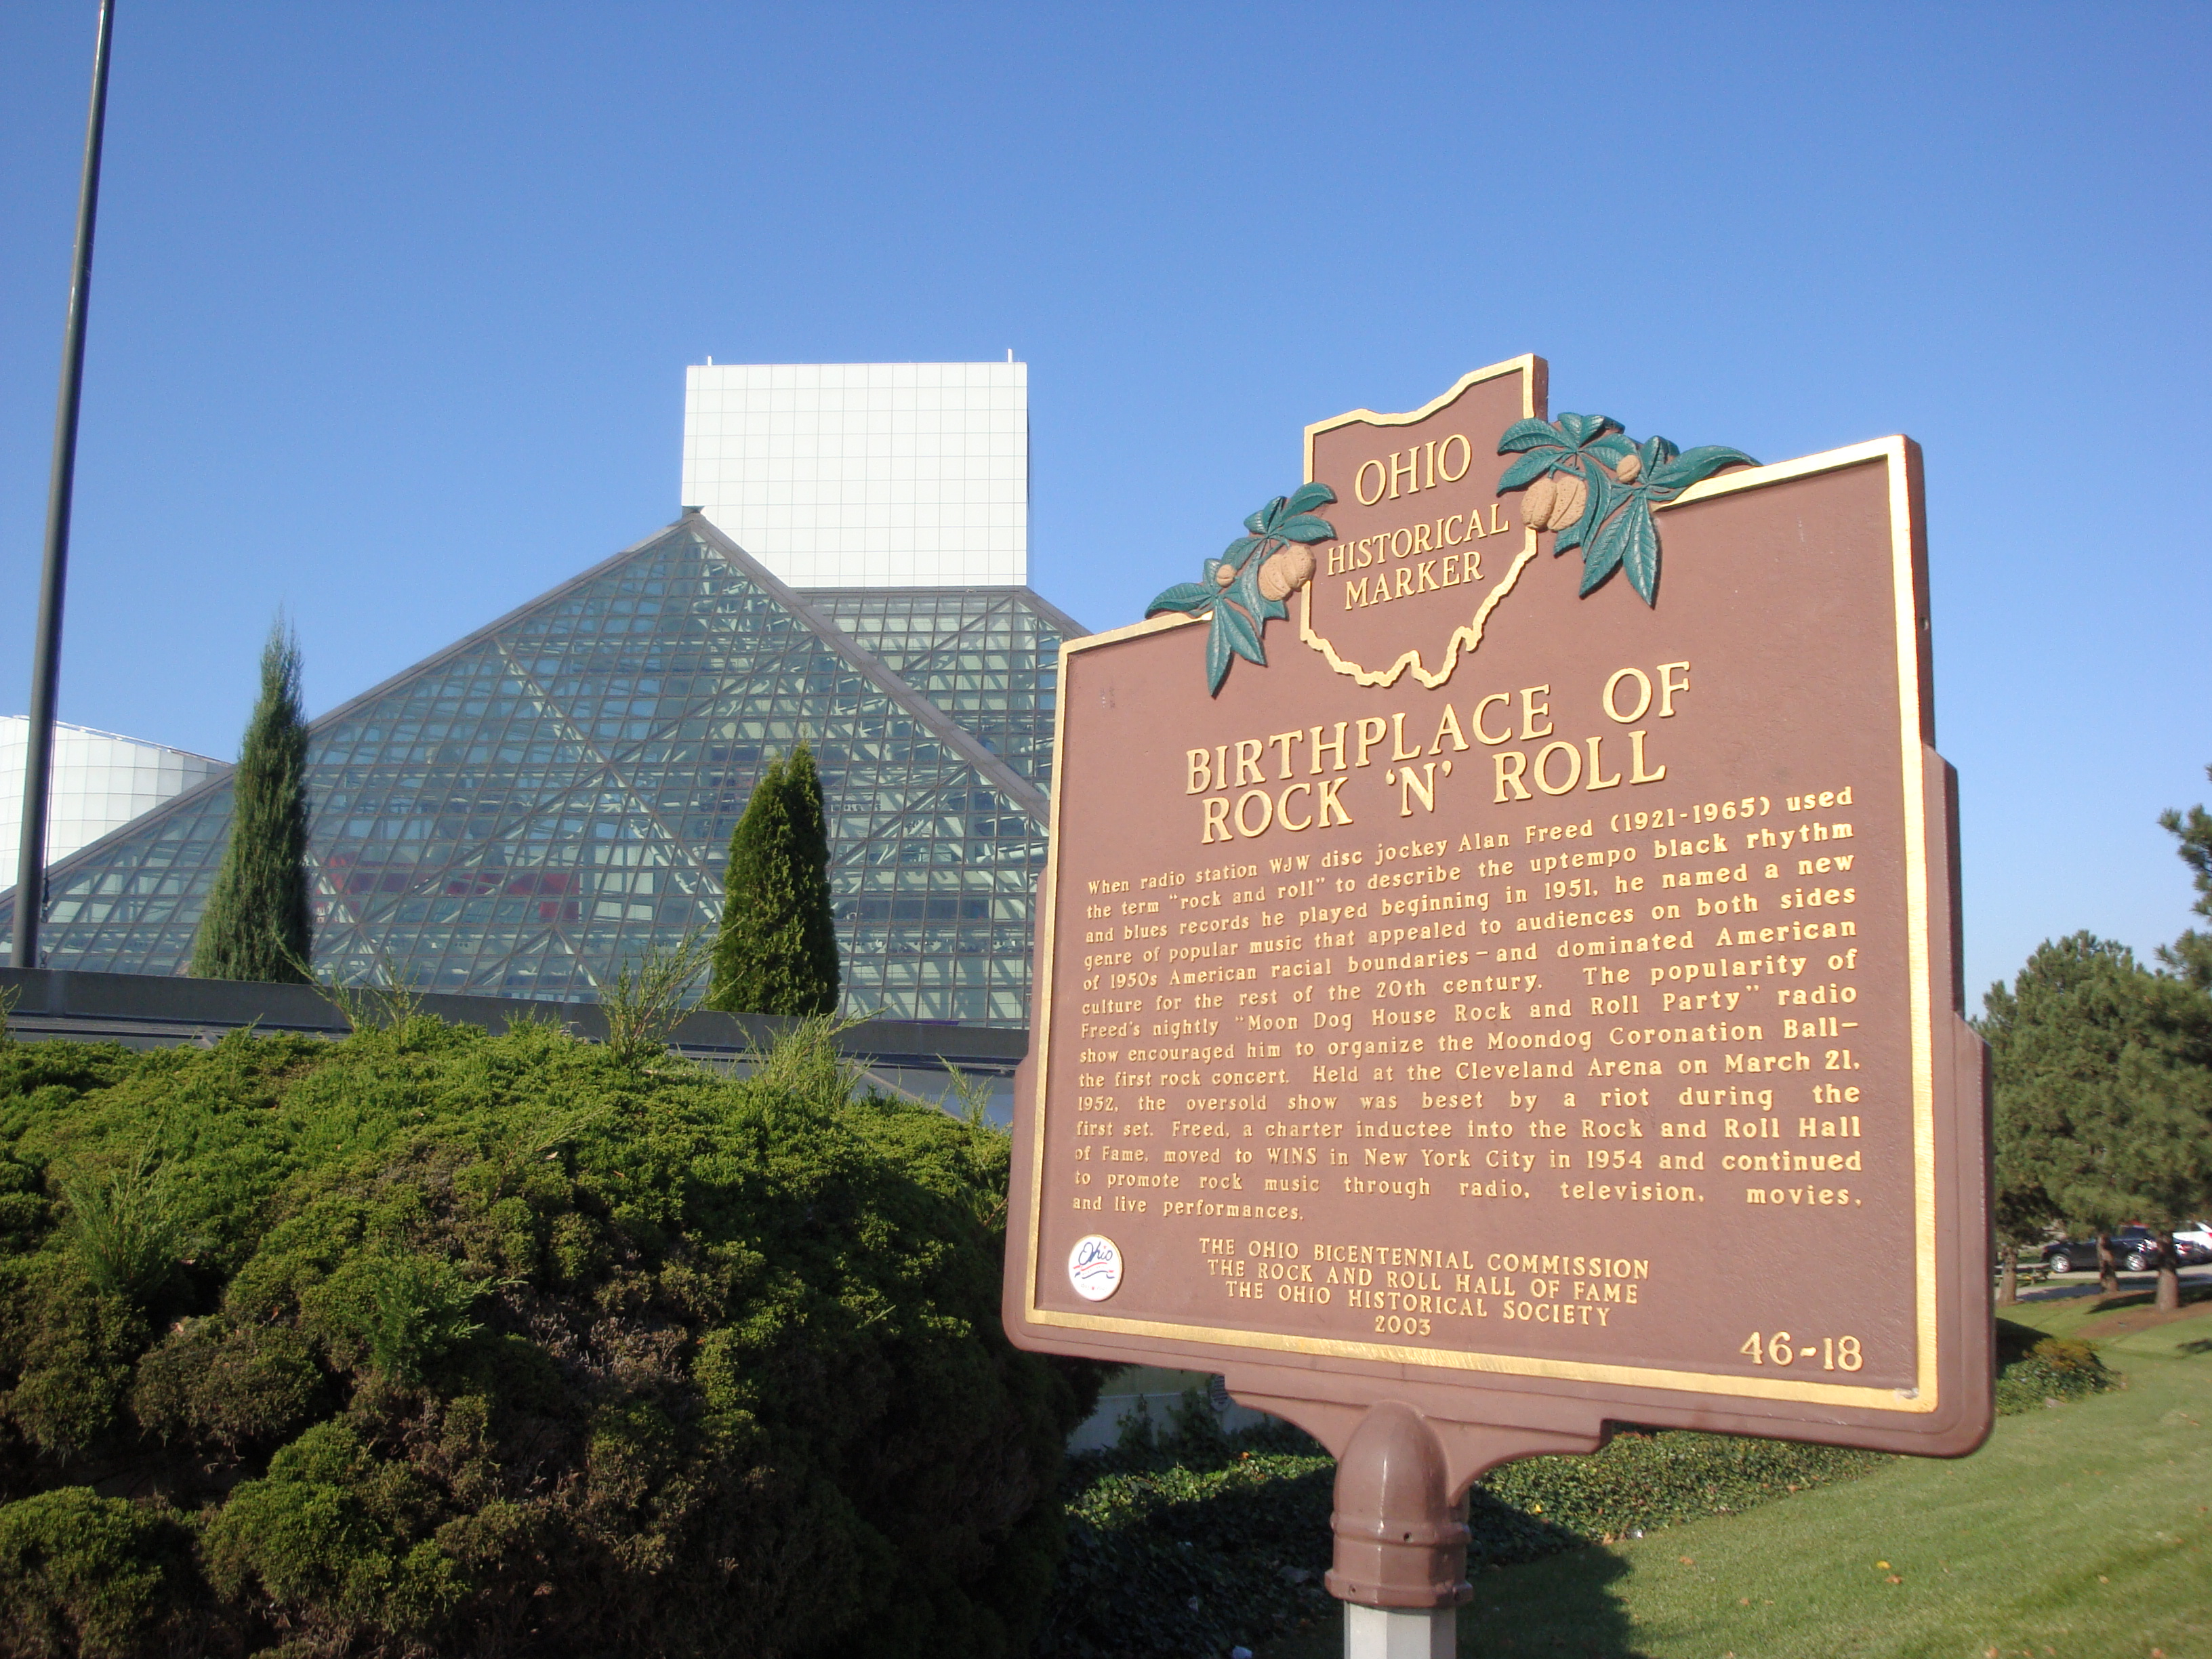 Birthplace of Rock 'n' Roll Ohio Historical Marker outside the Rock and Roll Hall of Fame and Museum